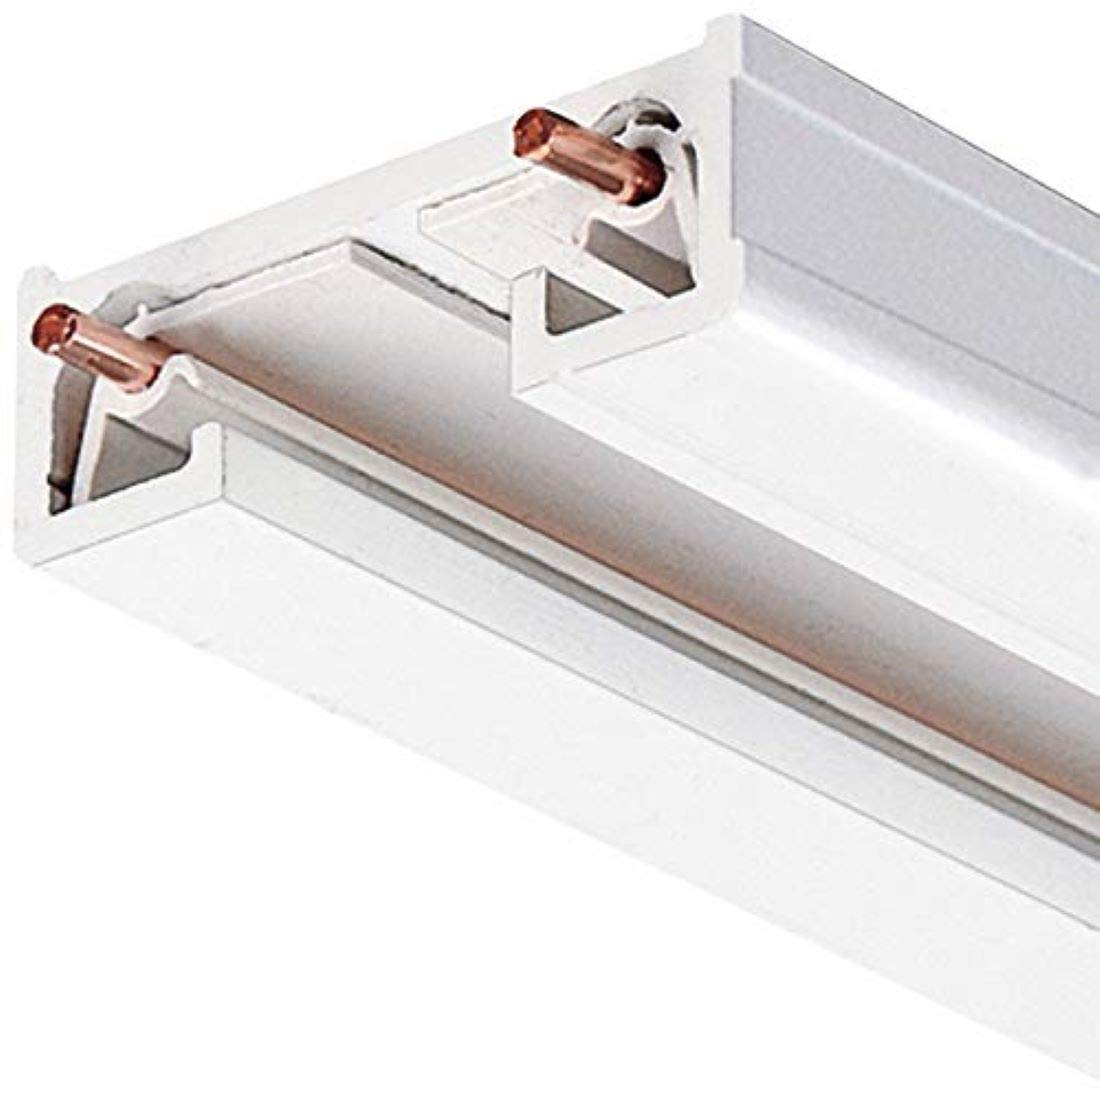 Juno Lighting 8FT WH R Series Trac-Lite Track Section, 8', White